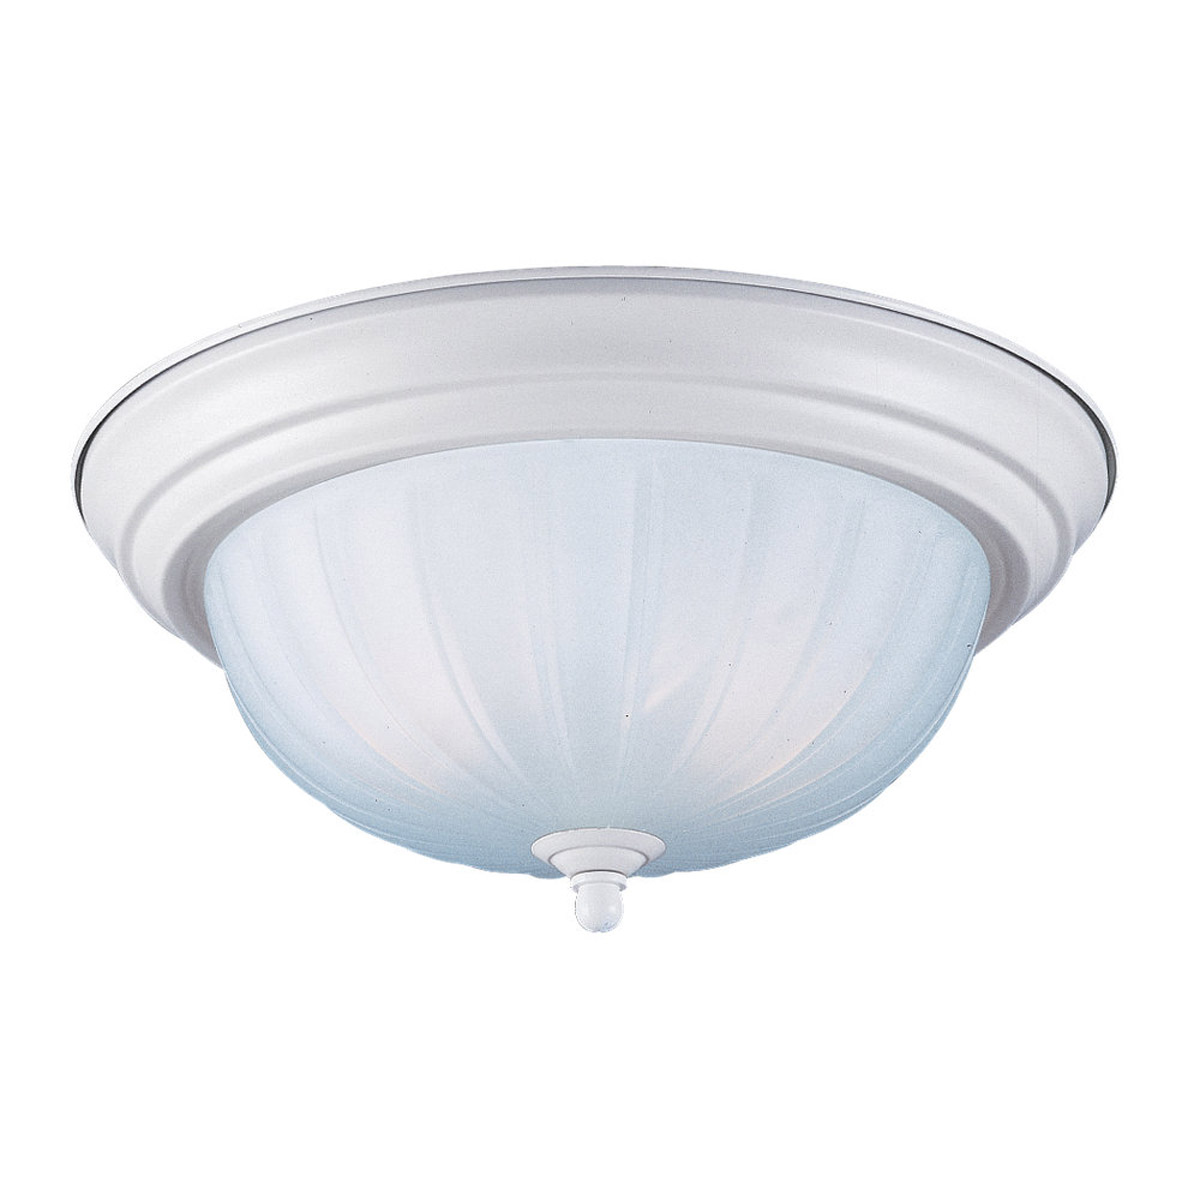 Sea Gull Lighting Floyd 3 Light Flush Mount in White 7506-15 photo